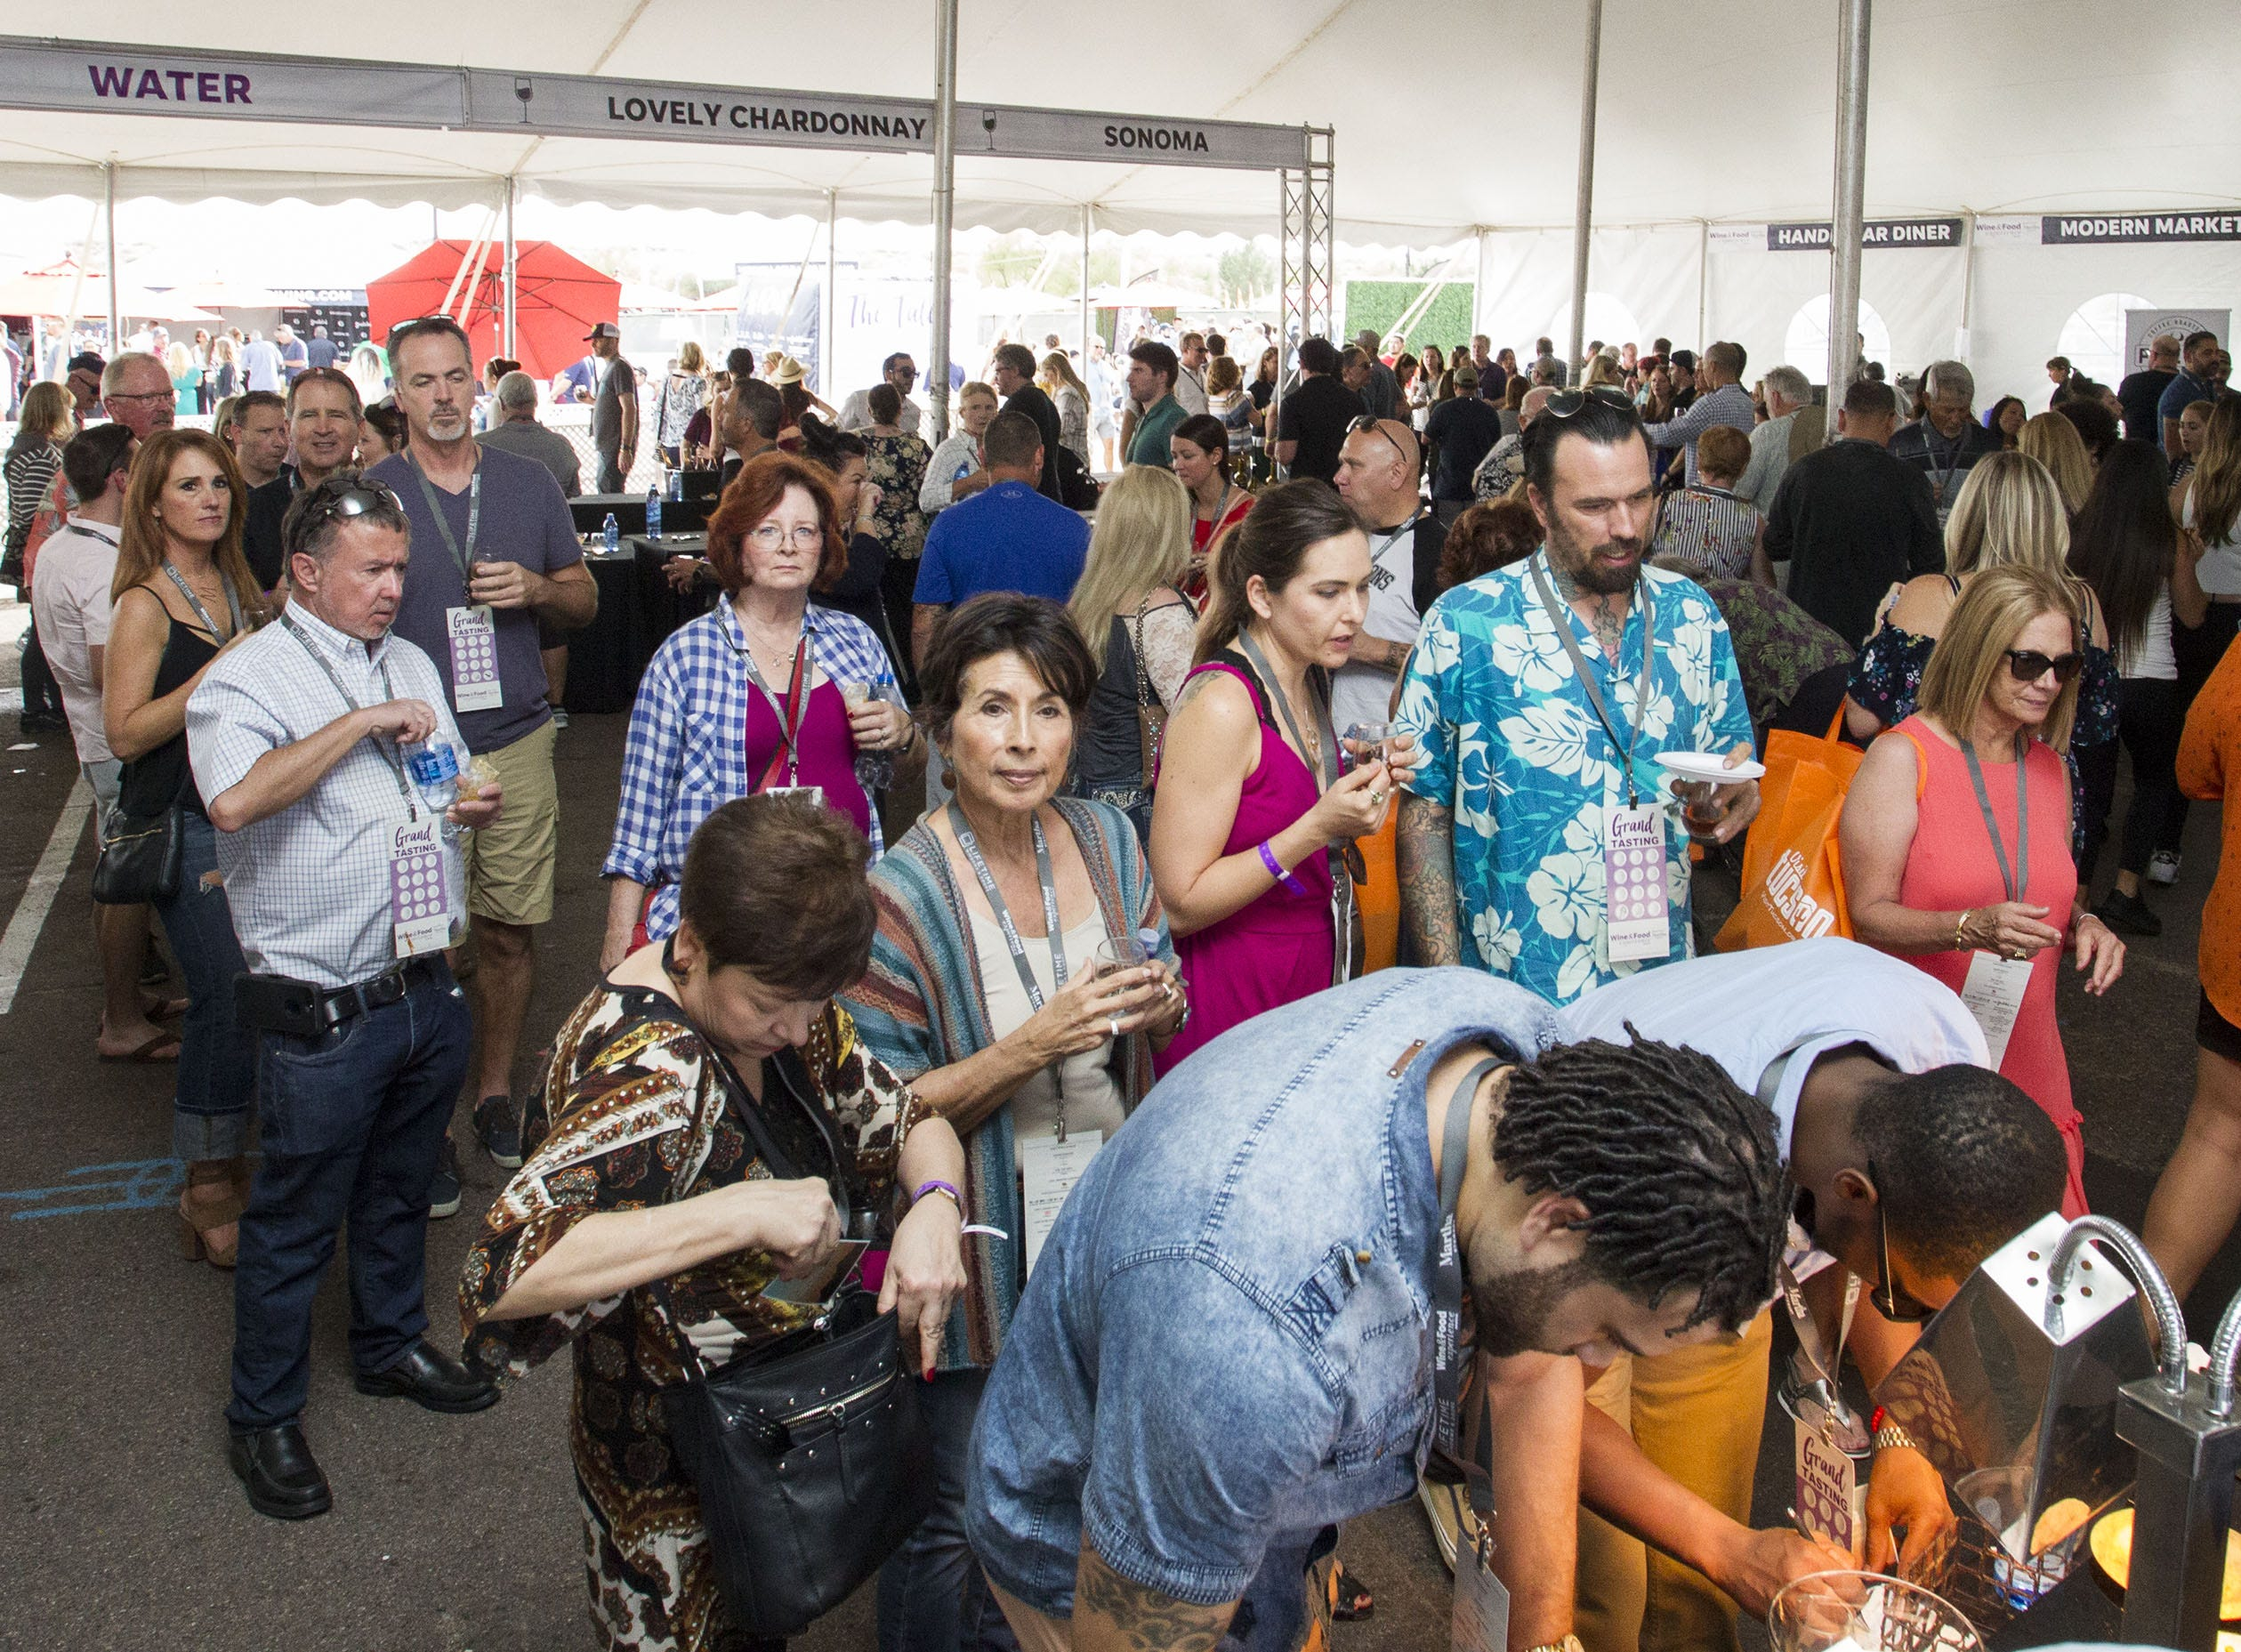 Wine & Food lovers wait in line for food samples during the azcentral Wine & Food Experience at WestWorld of Scottsdale, Sunday, Nov. 4, 2018.